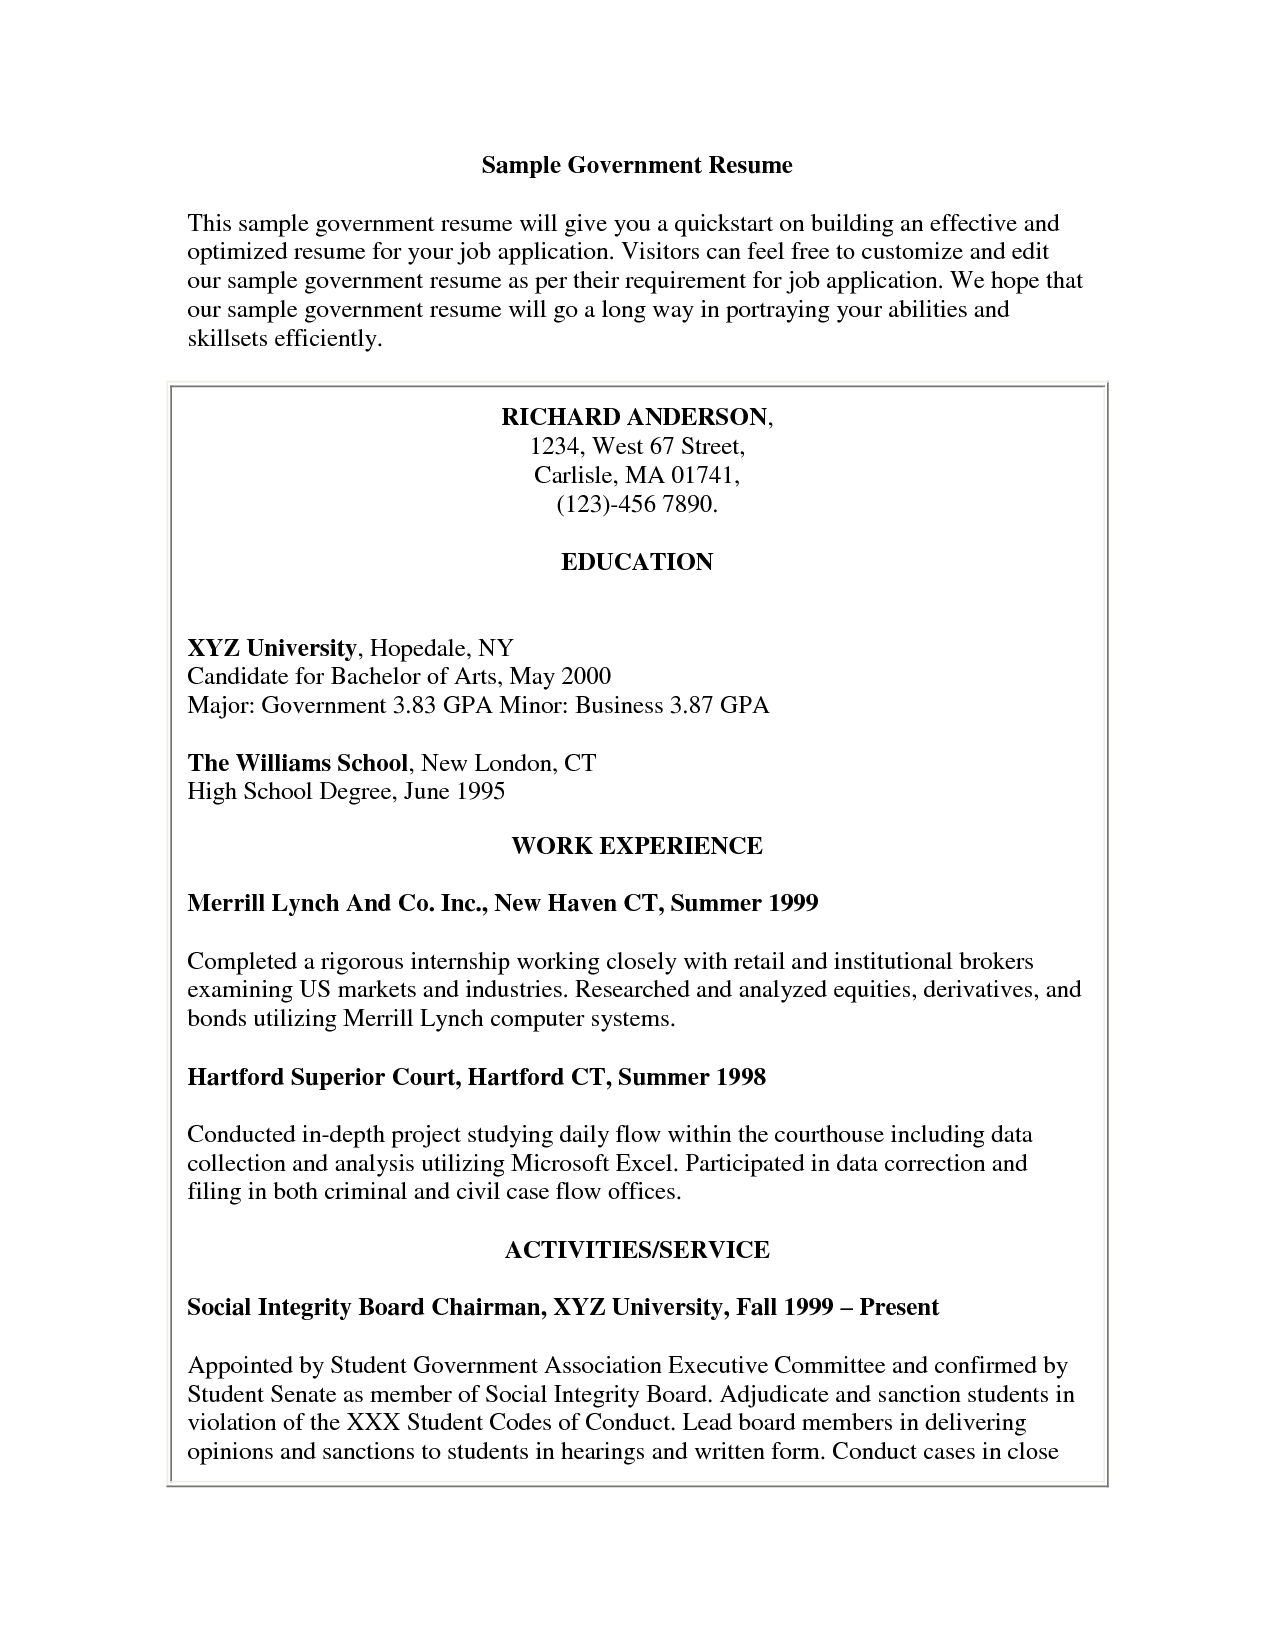 Free Resume Templates For Government Jobs Job Resume Examples